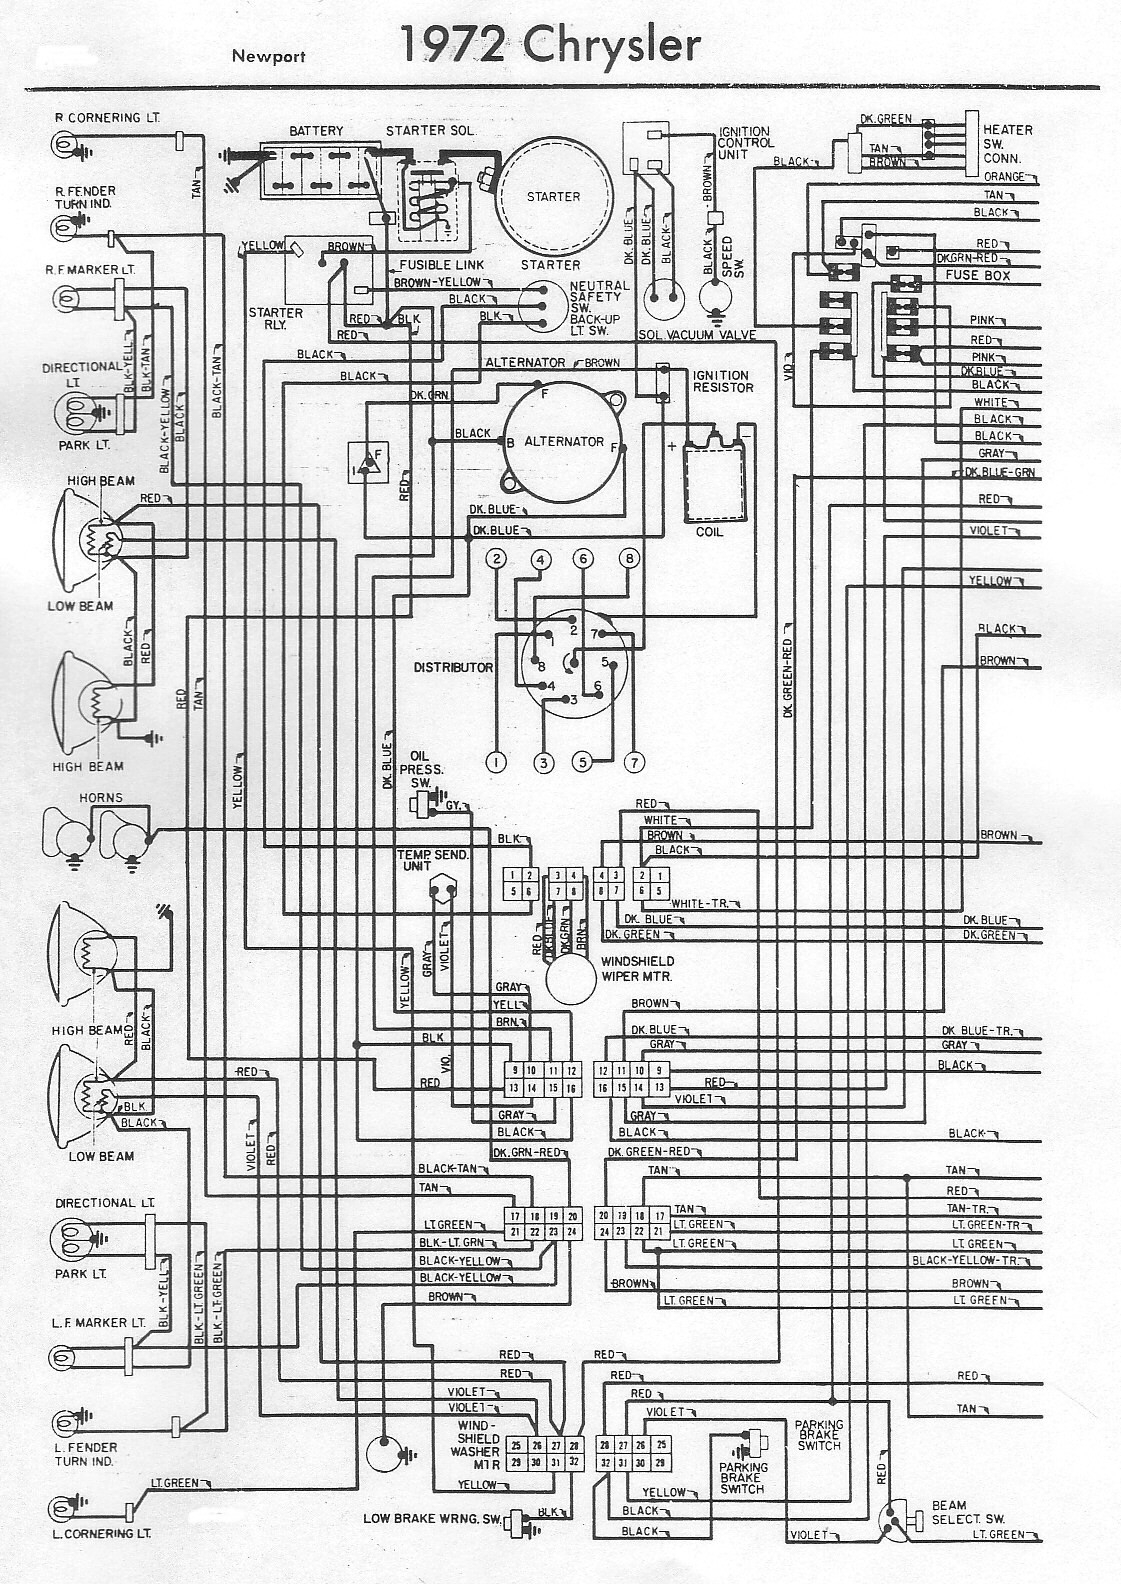 1972 Chrysler Newport Electrical Wiring Diagram | All